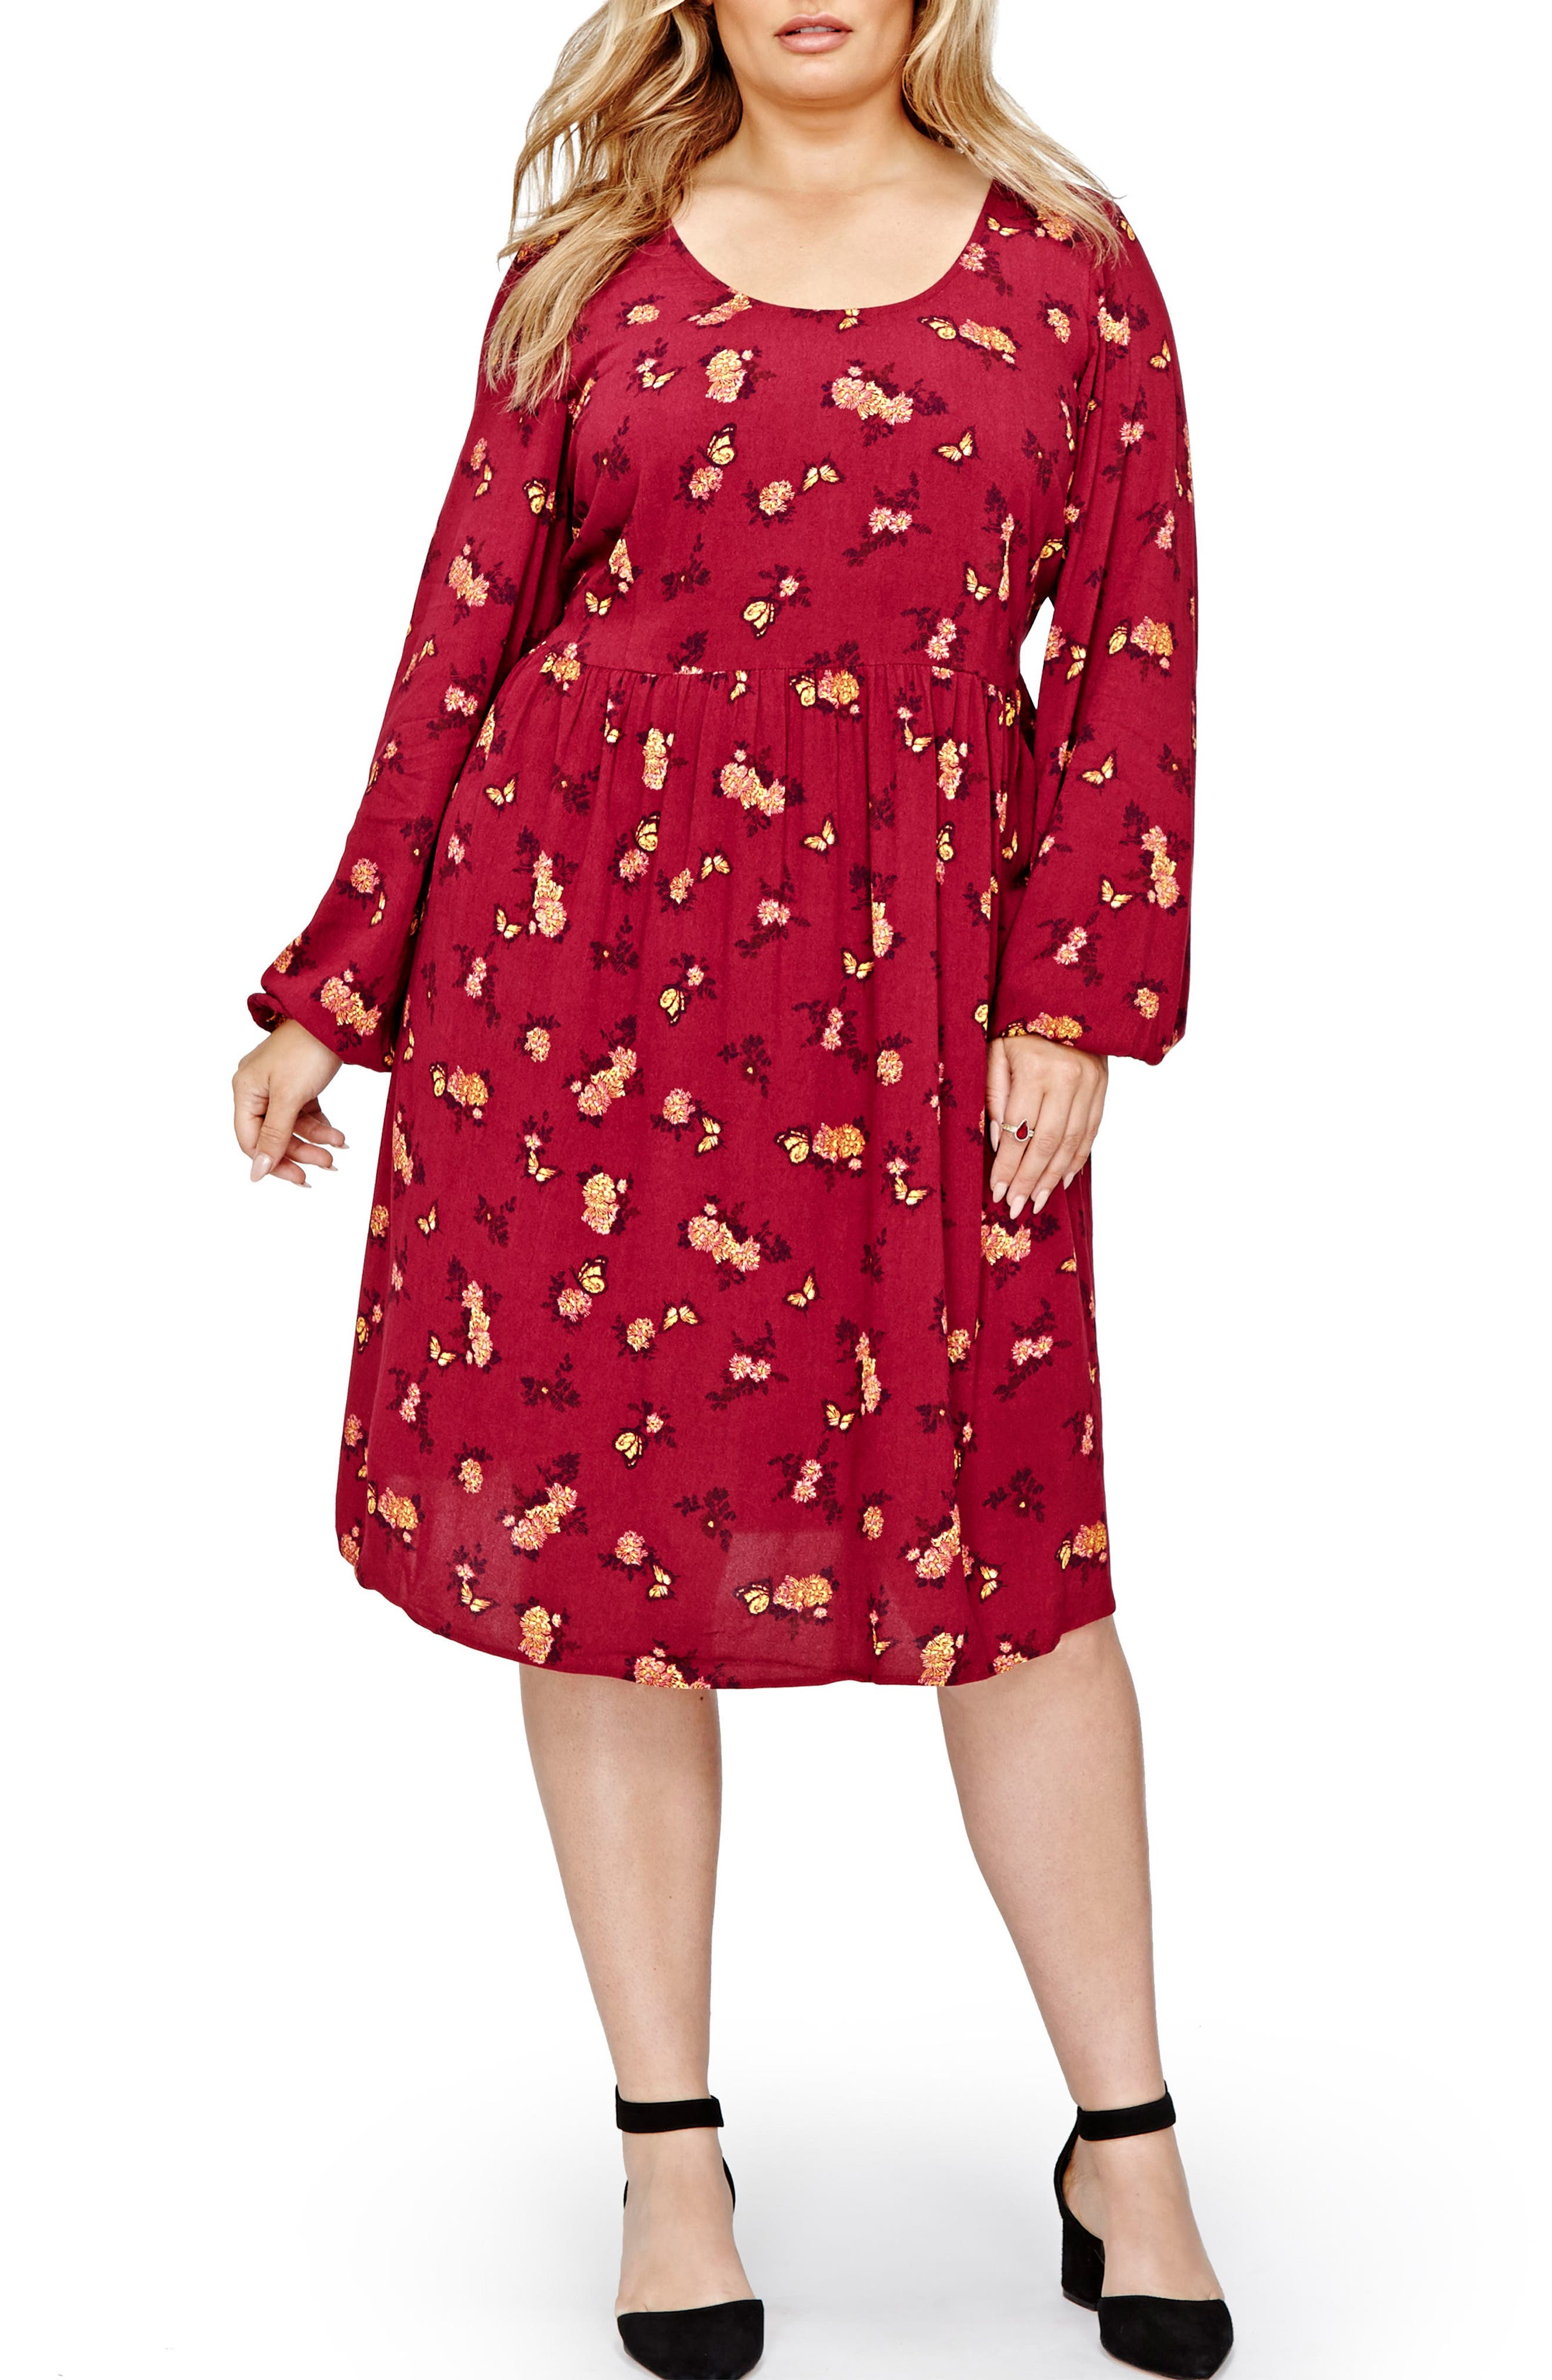 Floral Swing Dress,                         Main,                         color, Rhododendron Floral